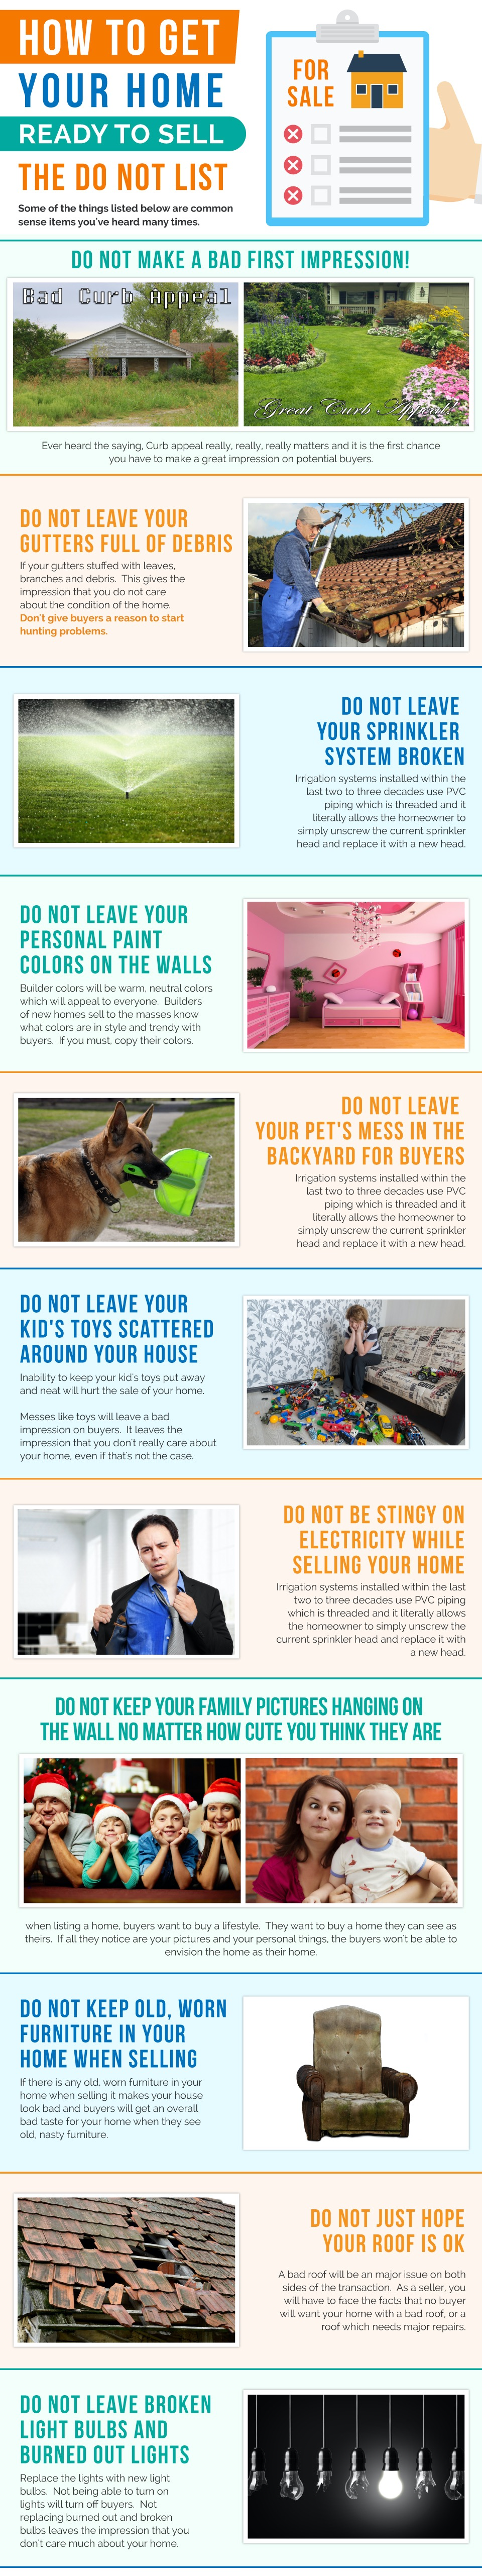 How To Get Your Home Ready To Sell.jpeg